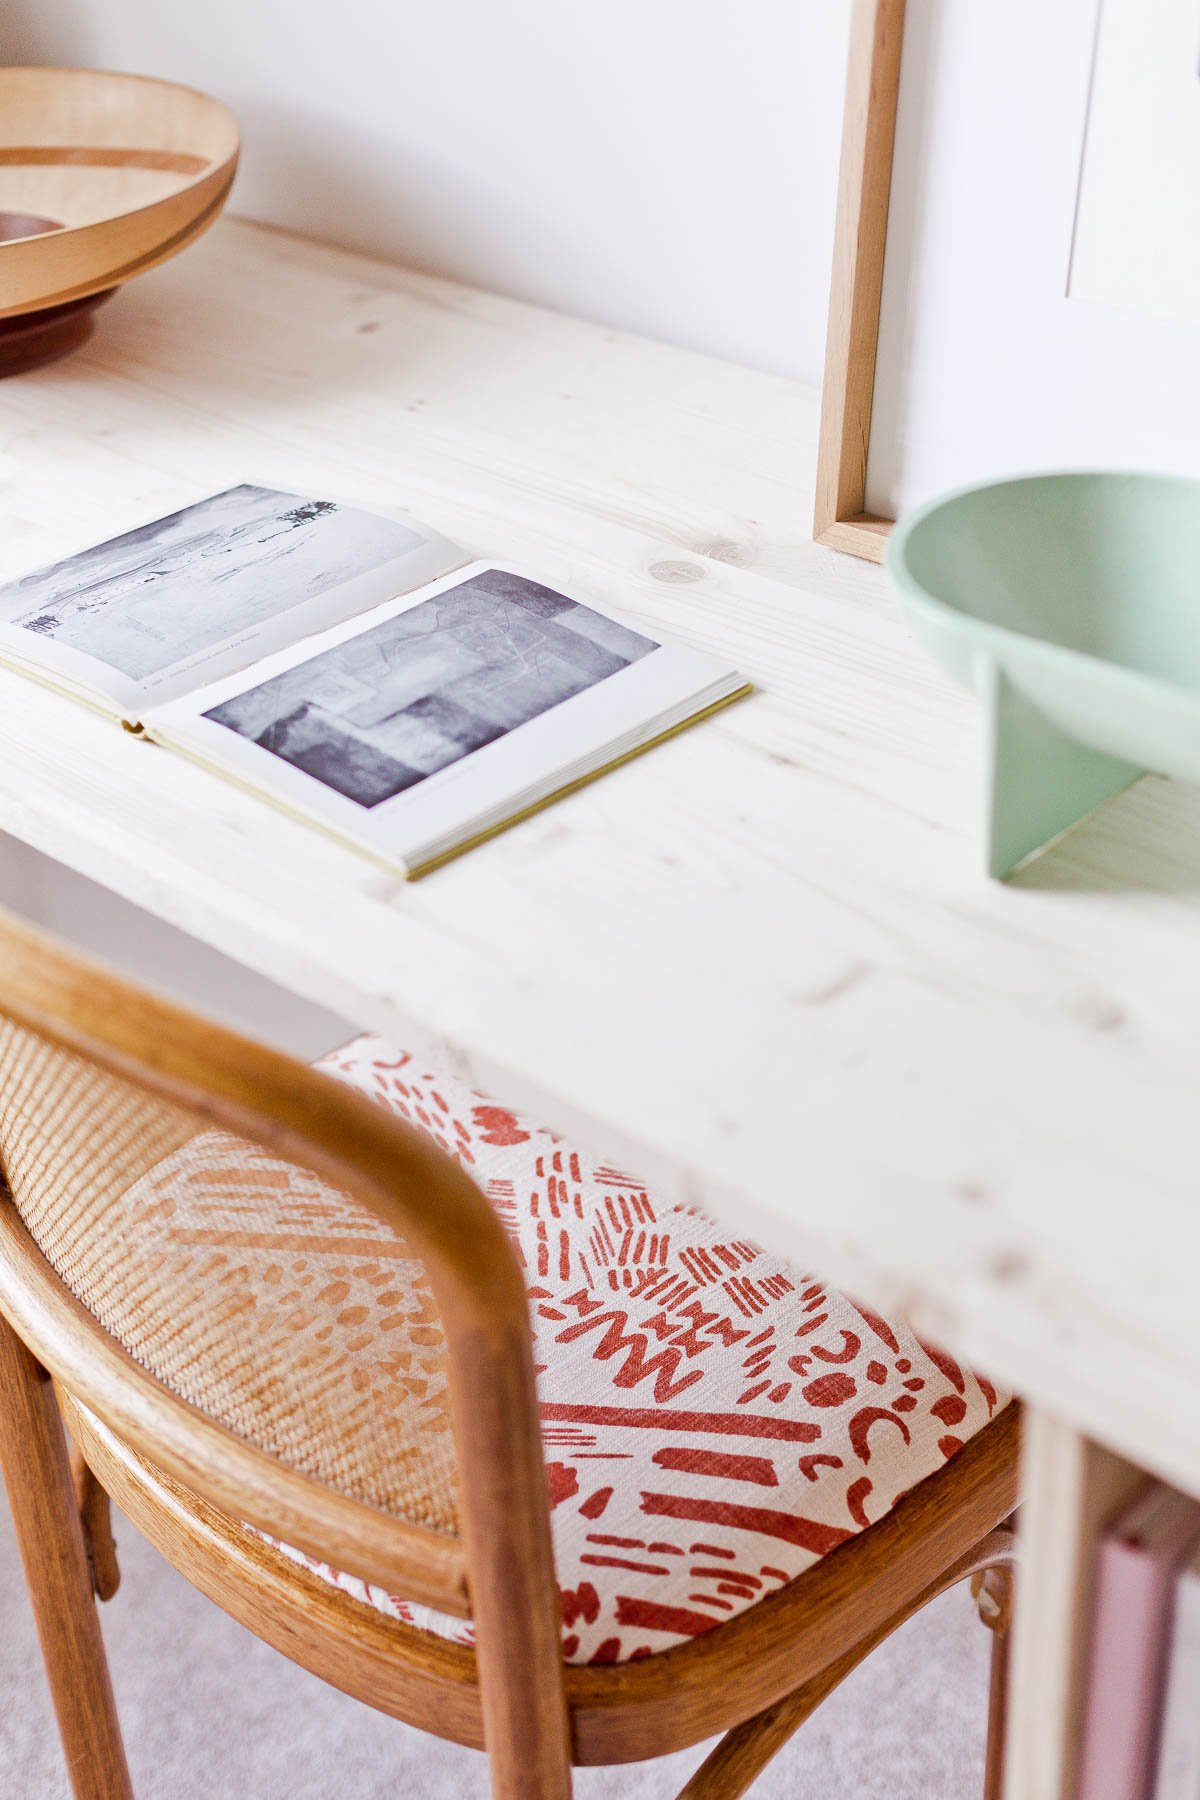 This DIY desk idea (with storage) uses just a few pieces of wood and some cleverly place corner braces. Click through for the tutorial. #desk #organicmodern #deskinspiration #wooddesk #diyfurniture